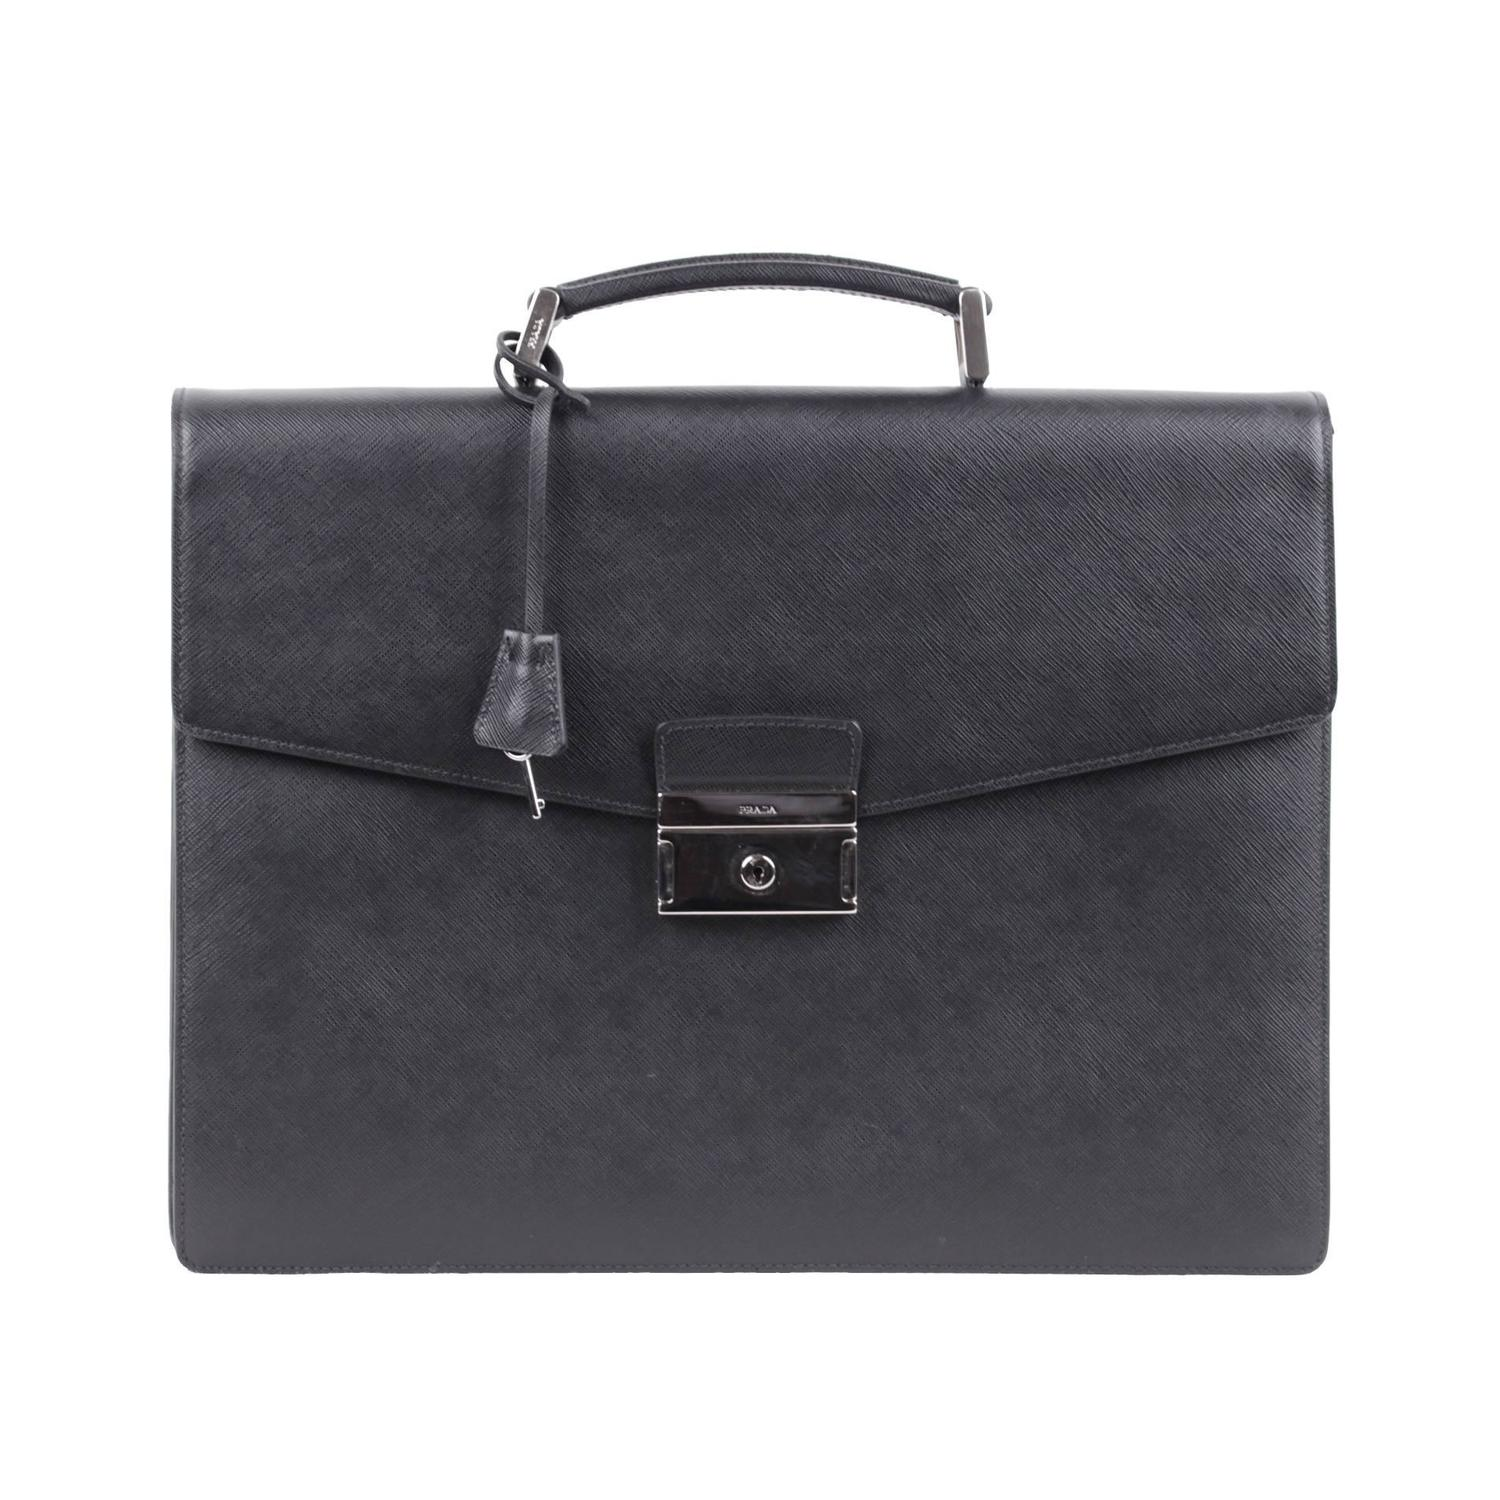 Prada Pouch Mens | Prada Briefcase | Prada Weekender Bag